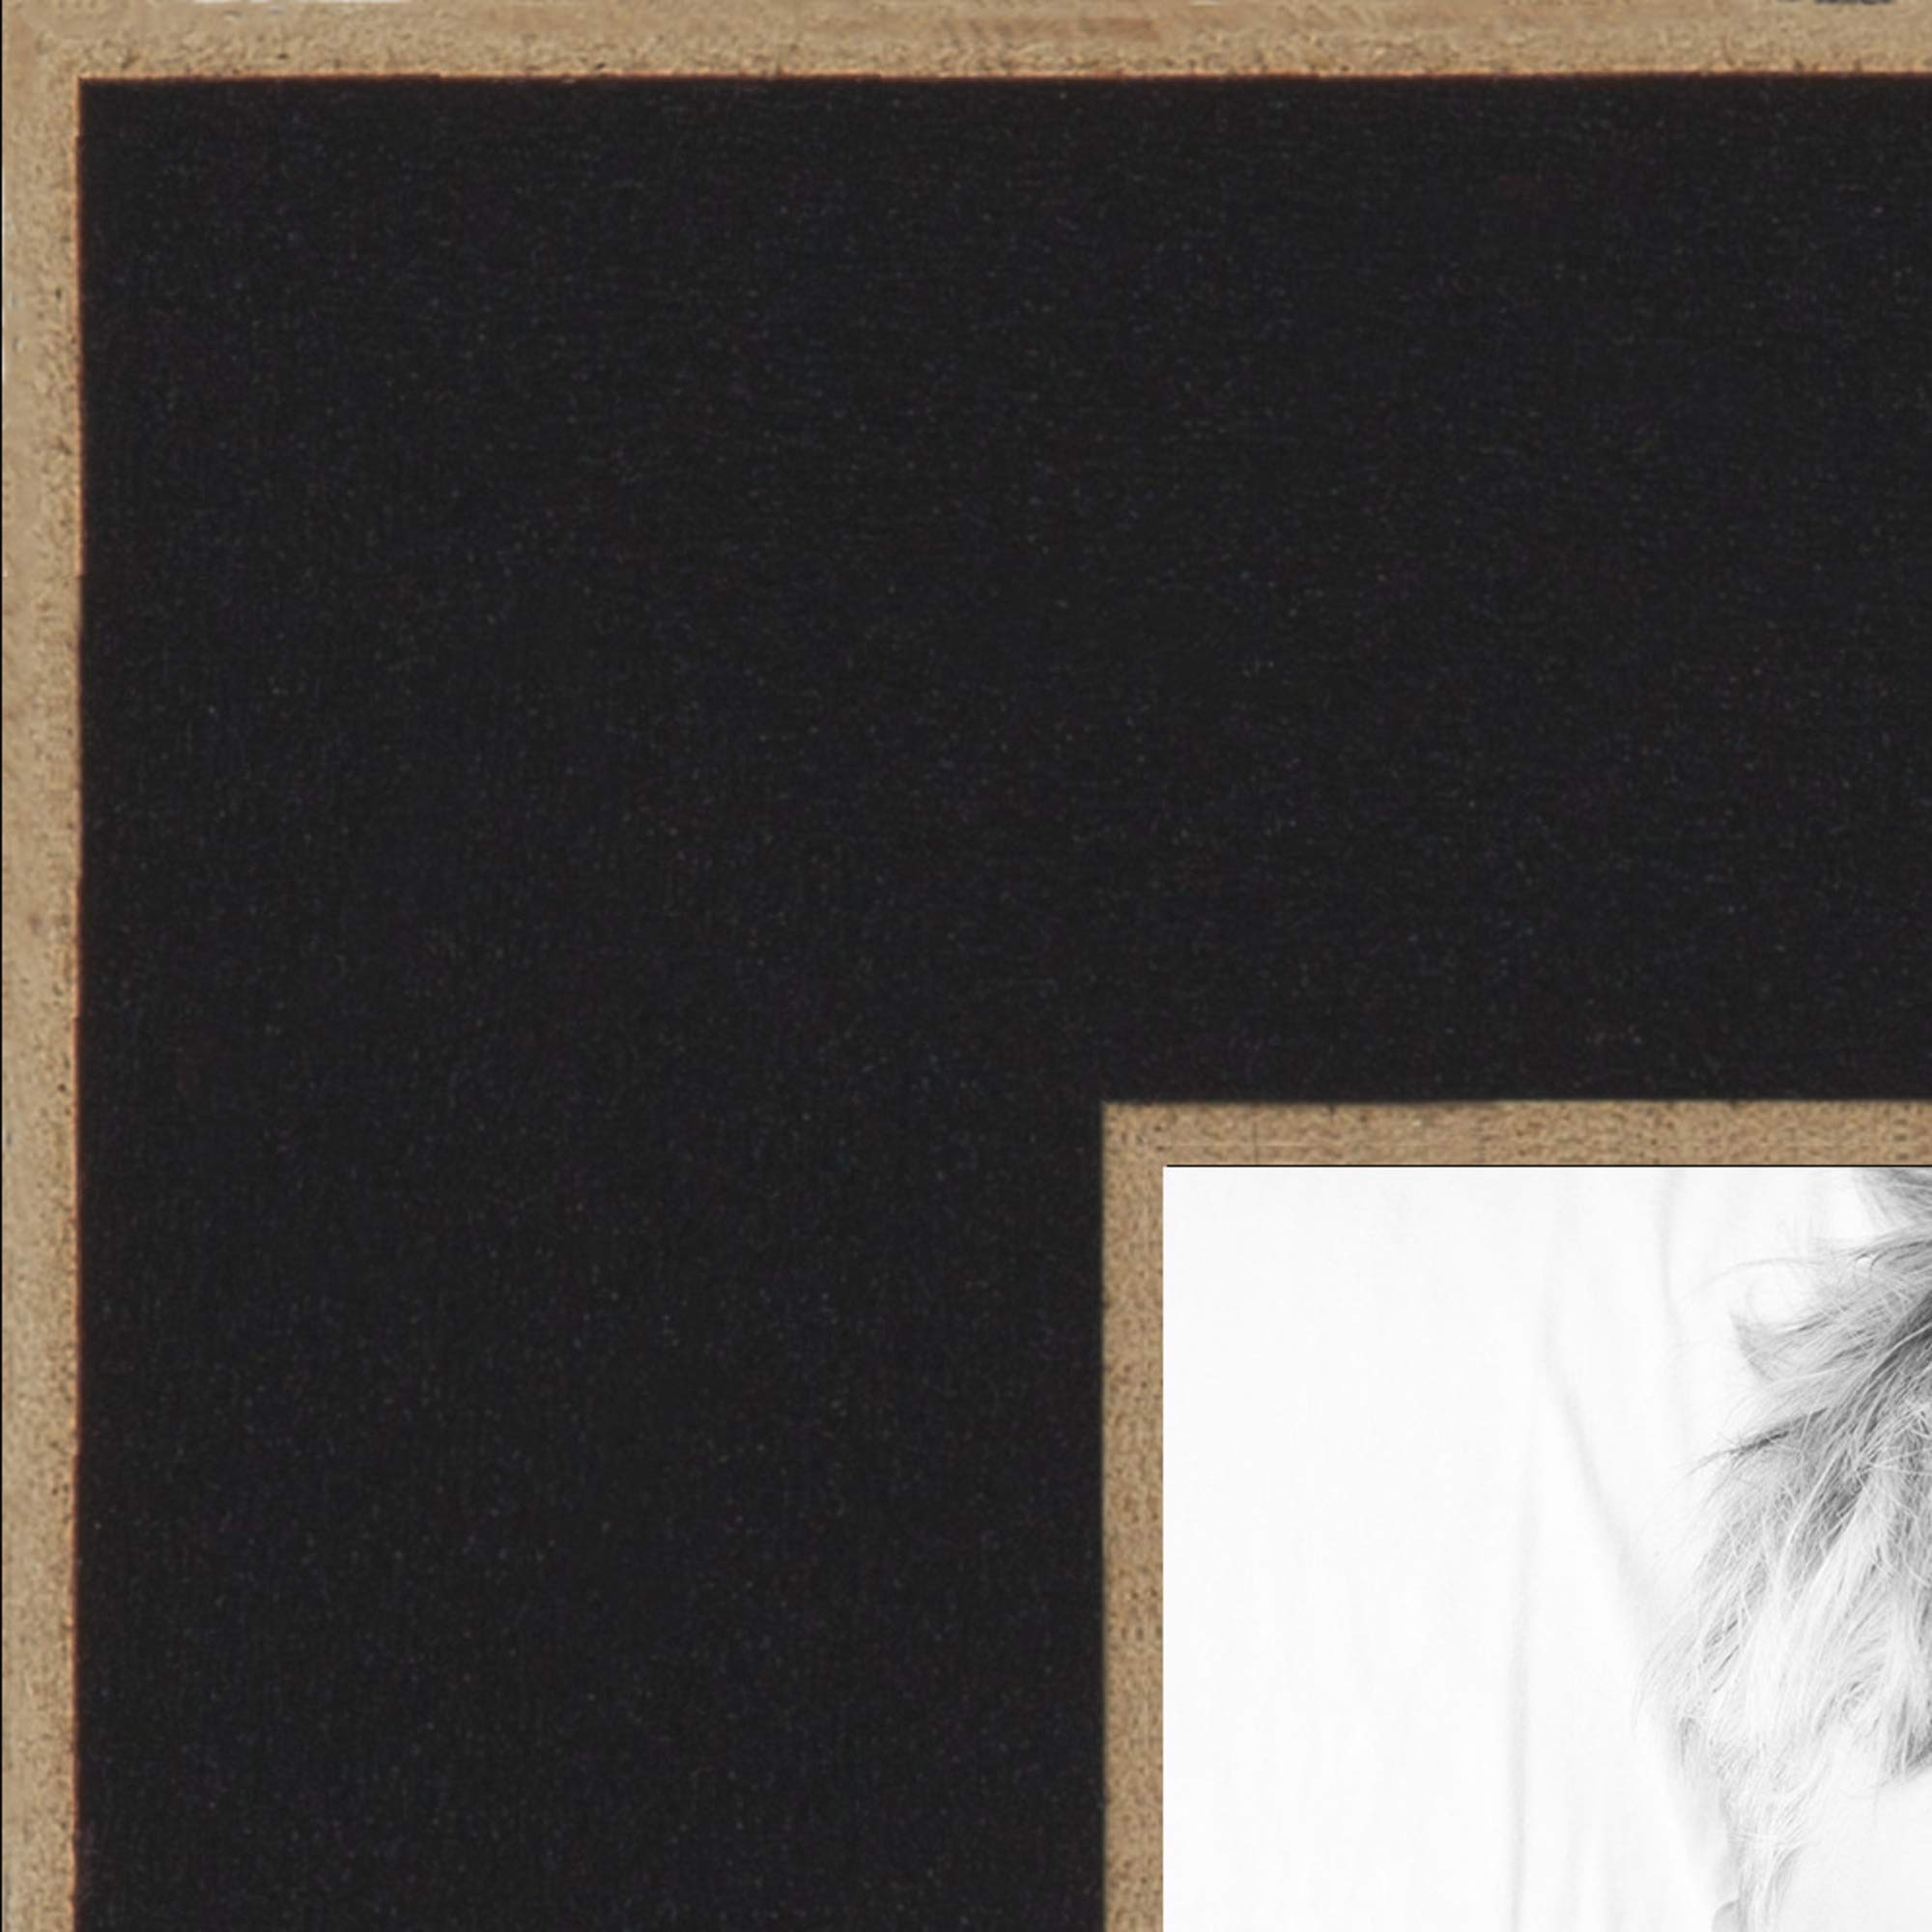 ArtToFrames 9x15 inch Black Satin with Raw Edges Picture Frame, 2WOM0066-76808-890R-9x15